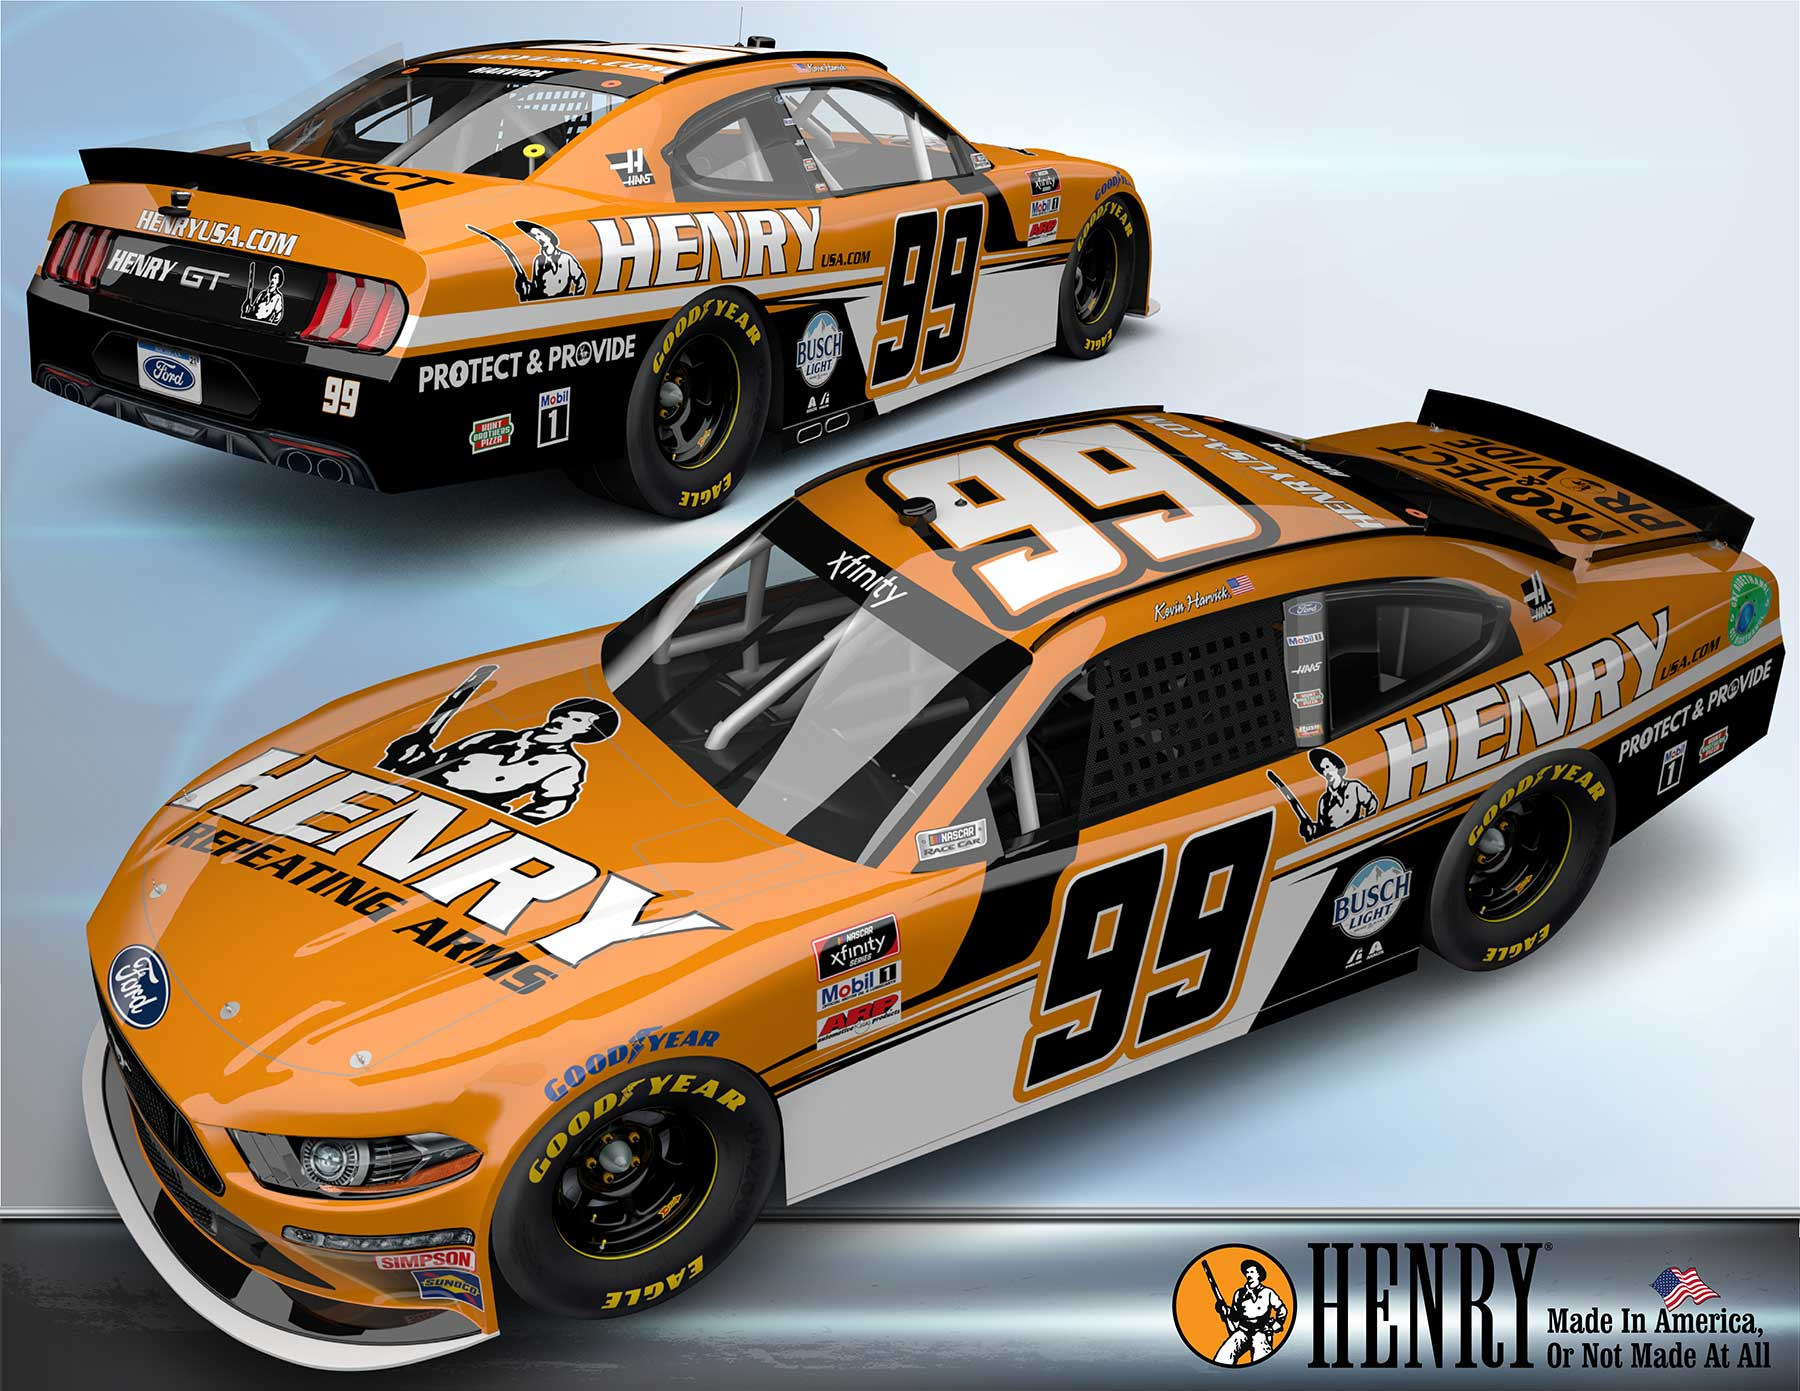 Read more about the article Henry Sponsoring NASCAR's Kevin Harvick